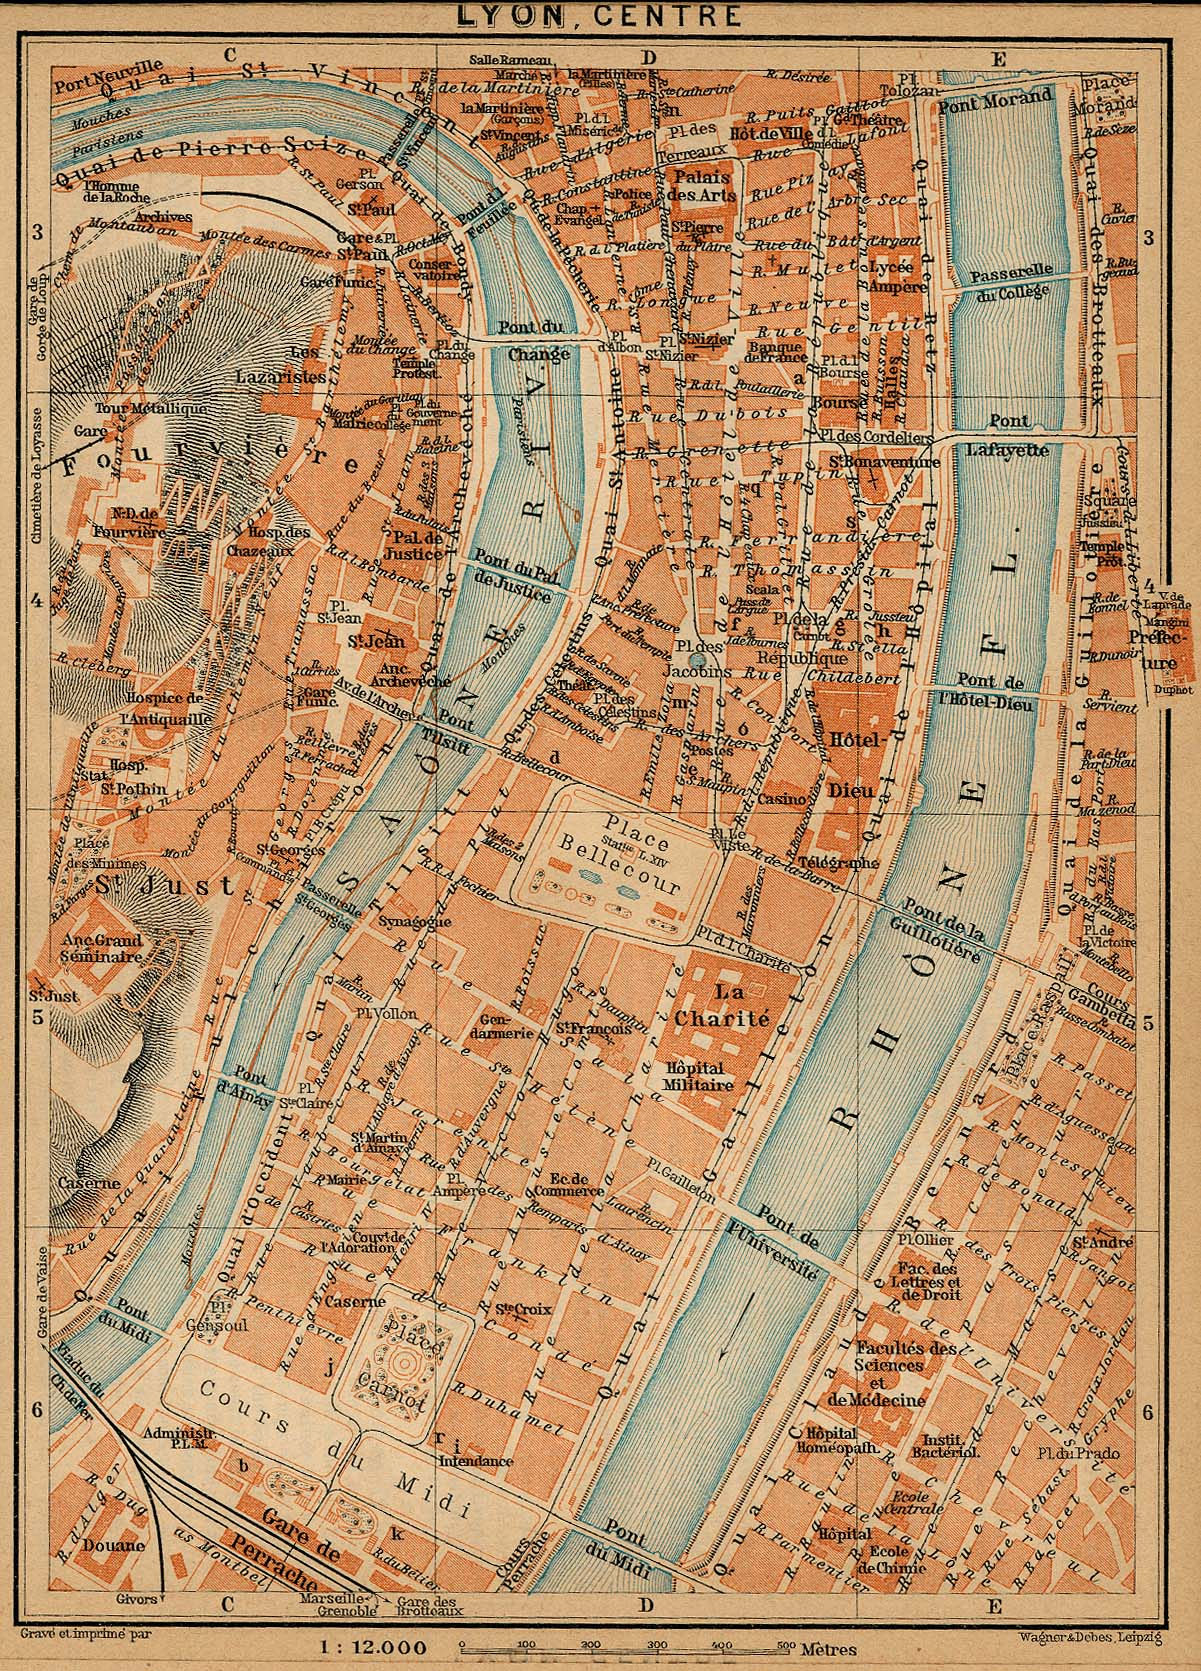 File:Plan Lyon centre Baedeker Southern France 1914.